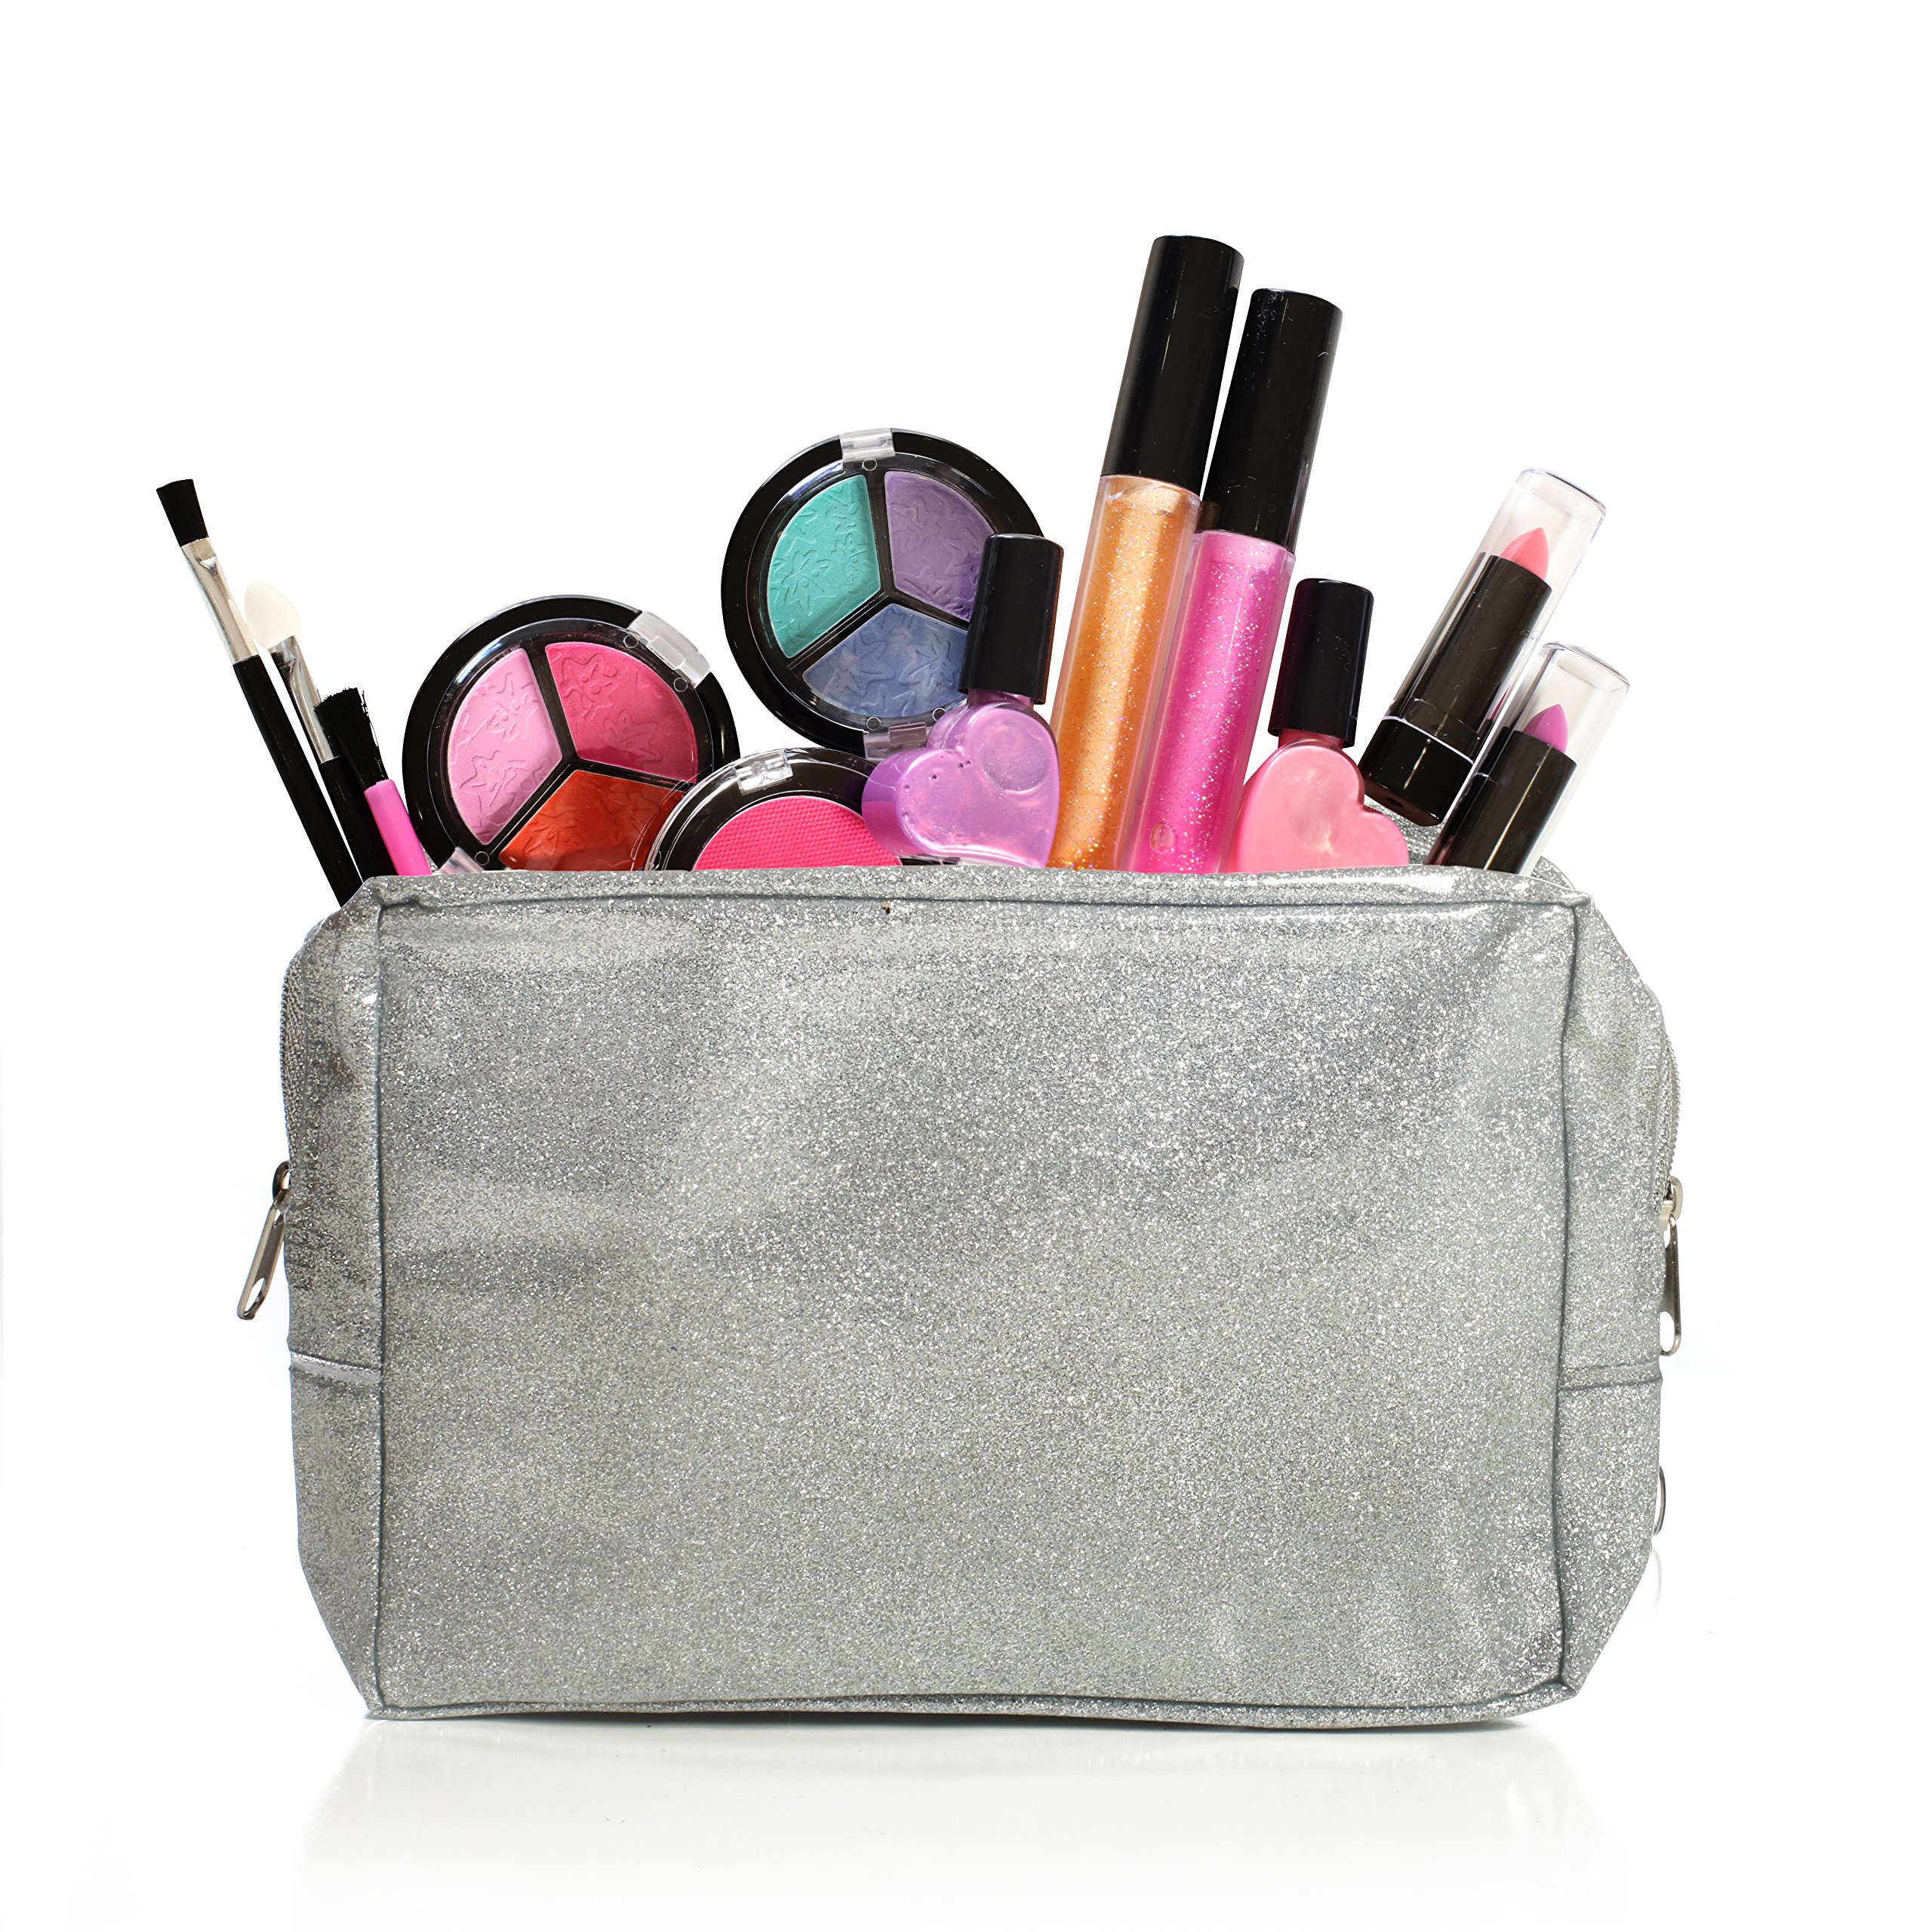 IQ Toys Kids Washable Makeup Set with A Glitter Cosmetic Bag by IQ Toys